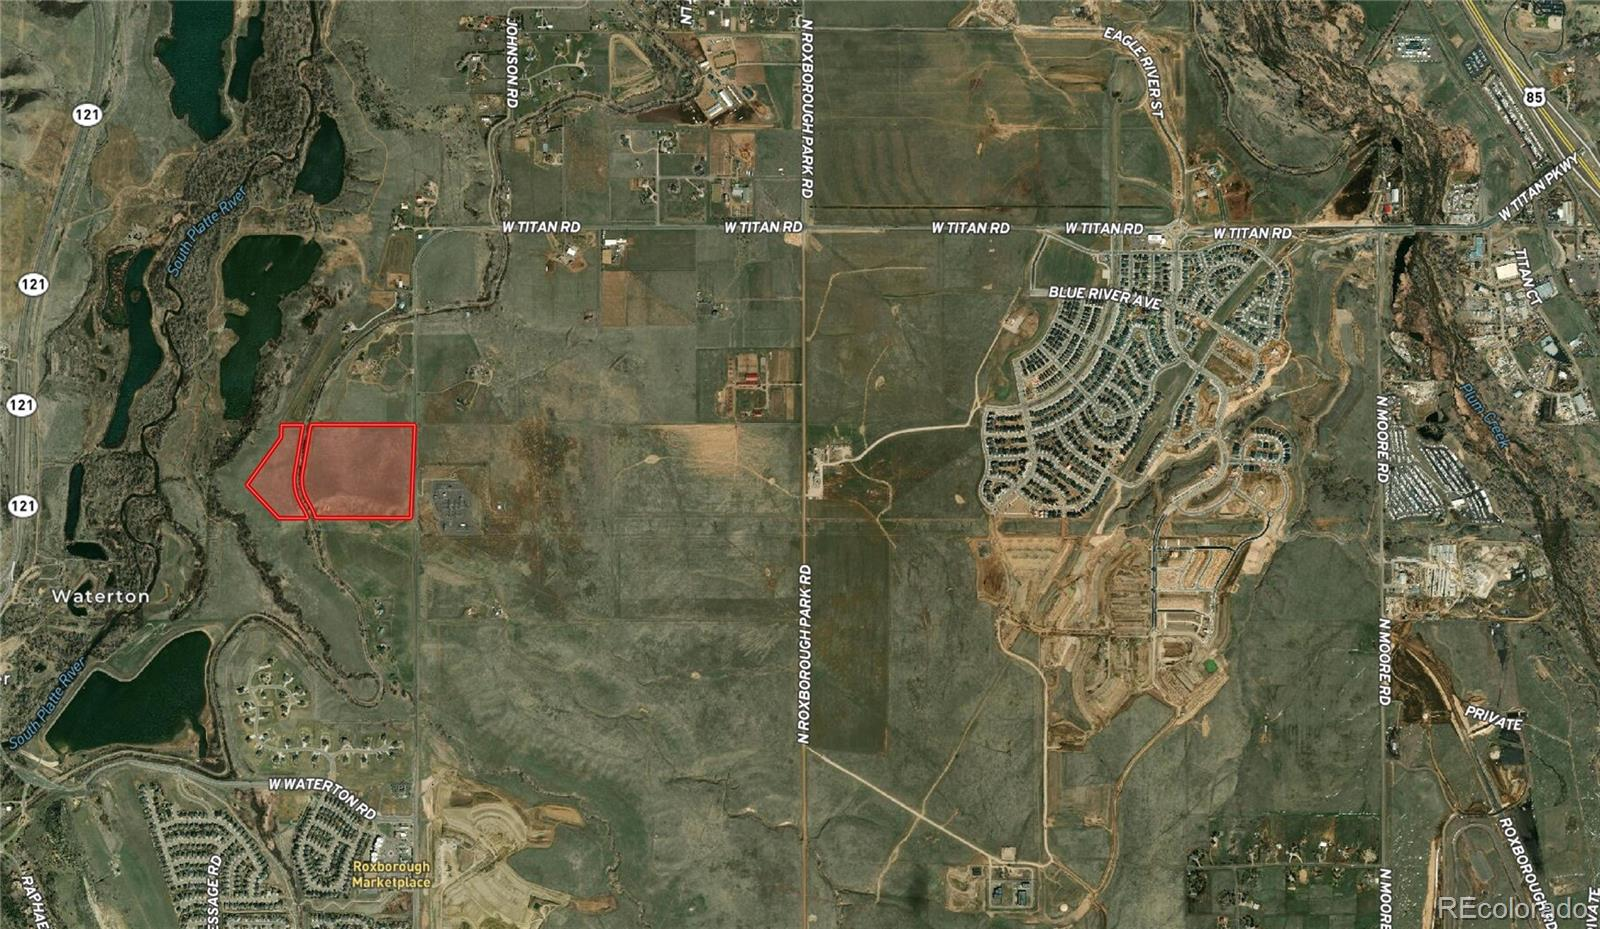 Residential development land requiring entitlements and utilities. Douglas county R0363110 and R0363112. Please contact Broker for most up to date improvements and property tax information.